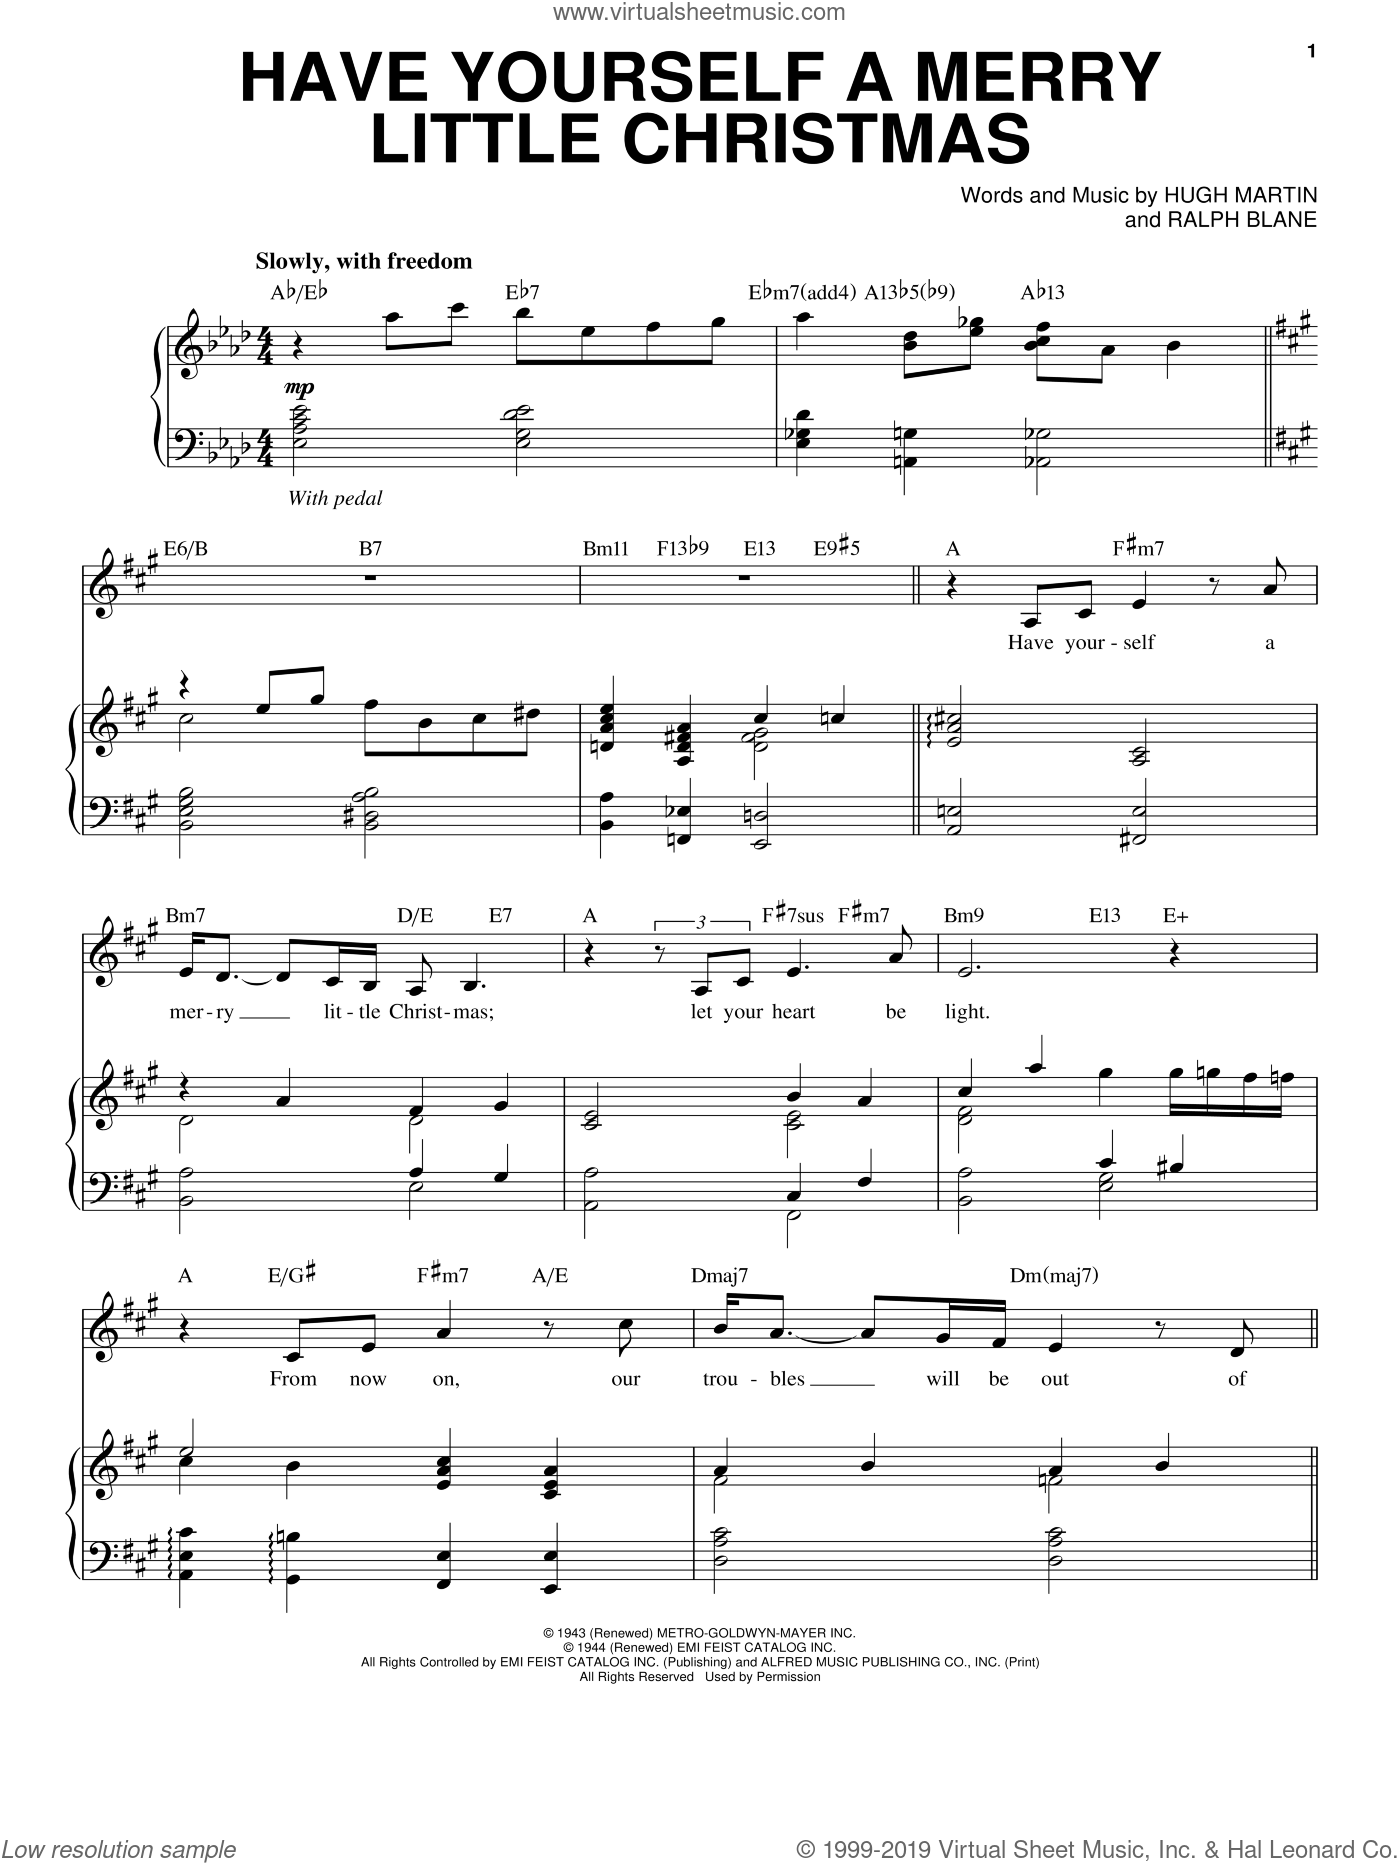 Have Yourself A Merry Little Christmas sheet music for voice and piano by Ralph Blane